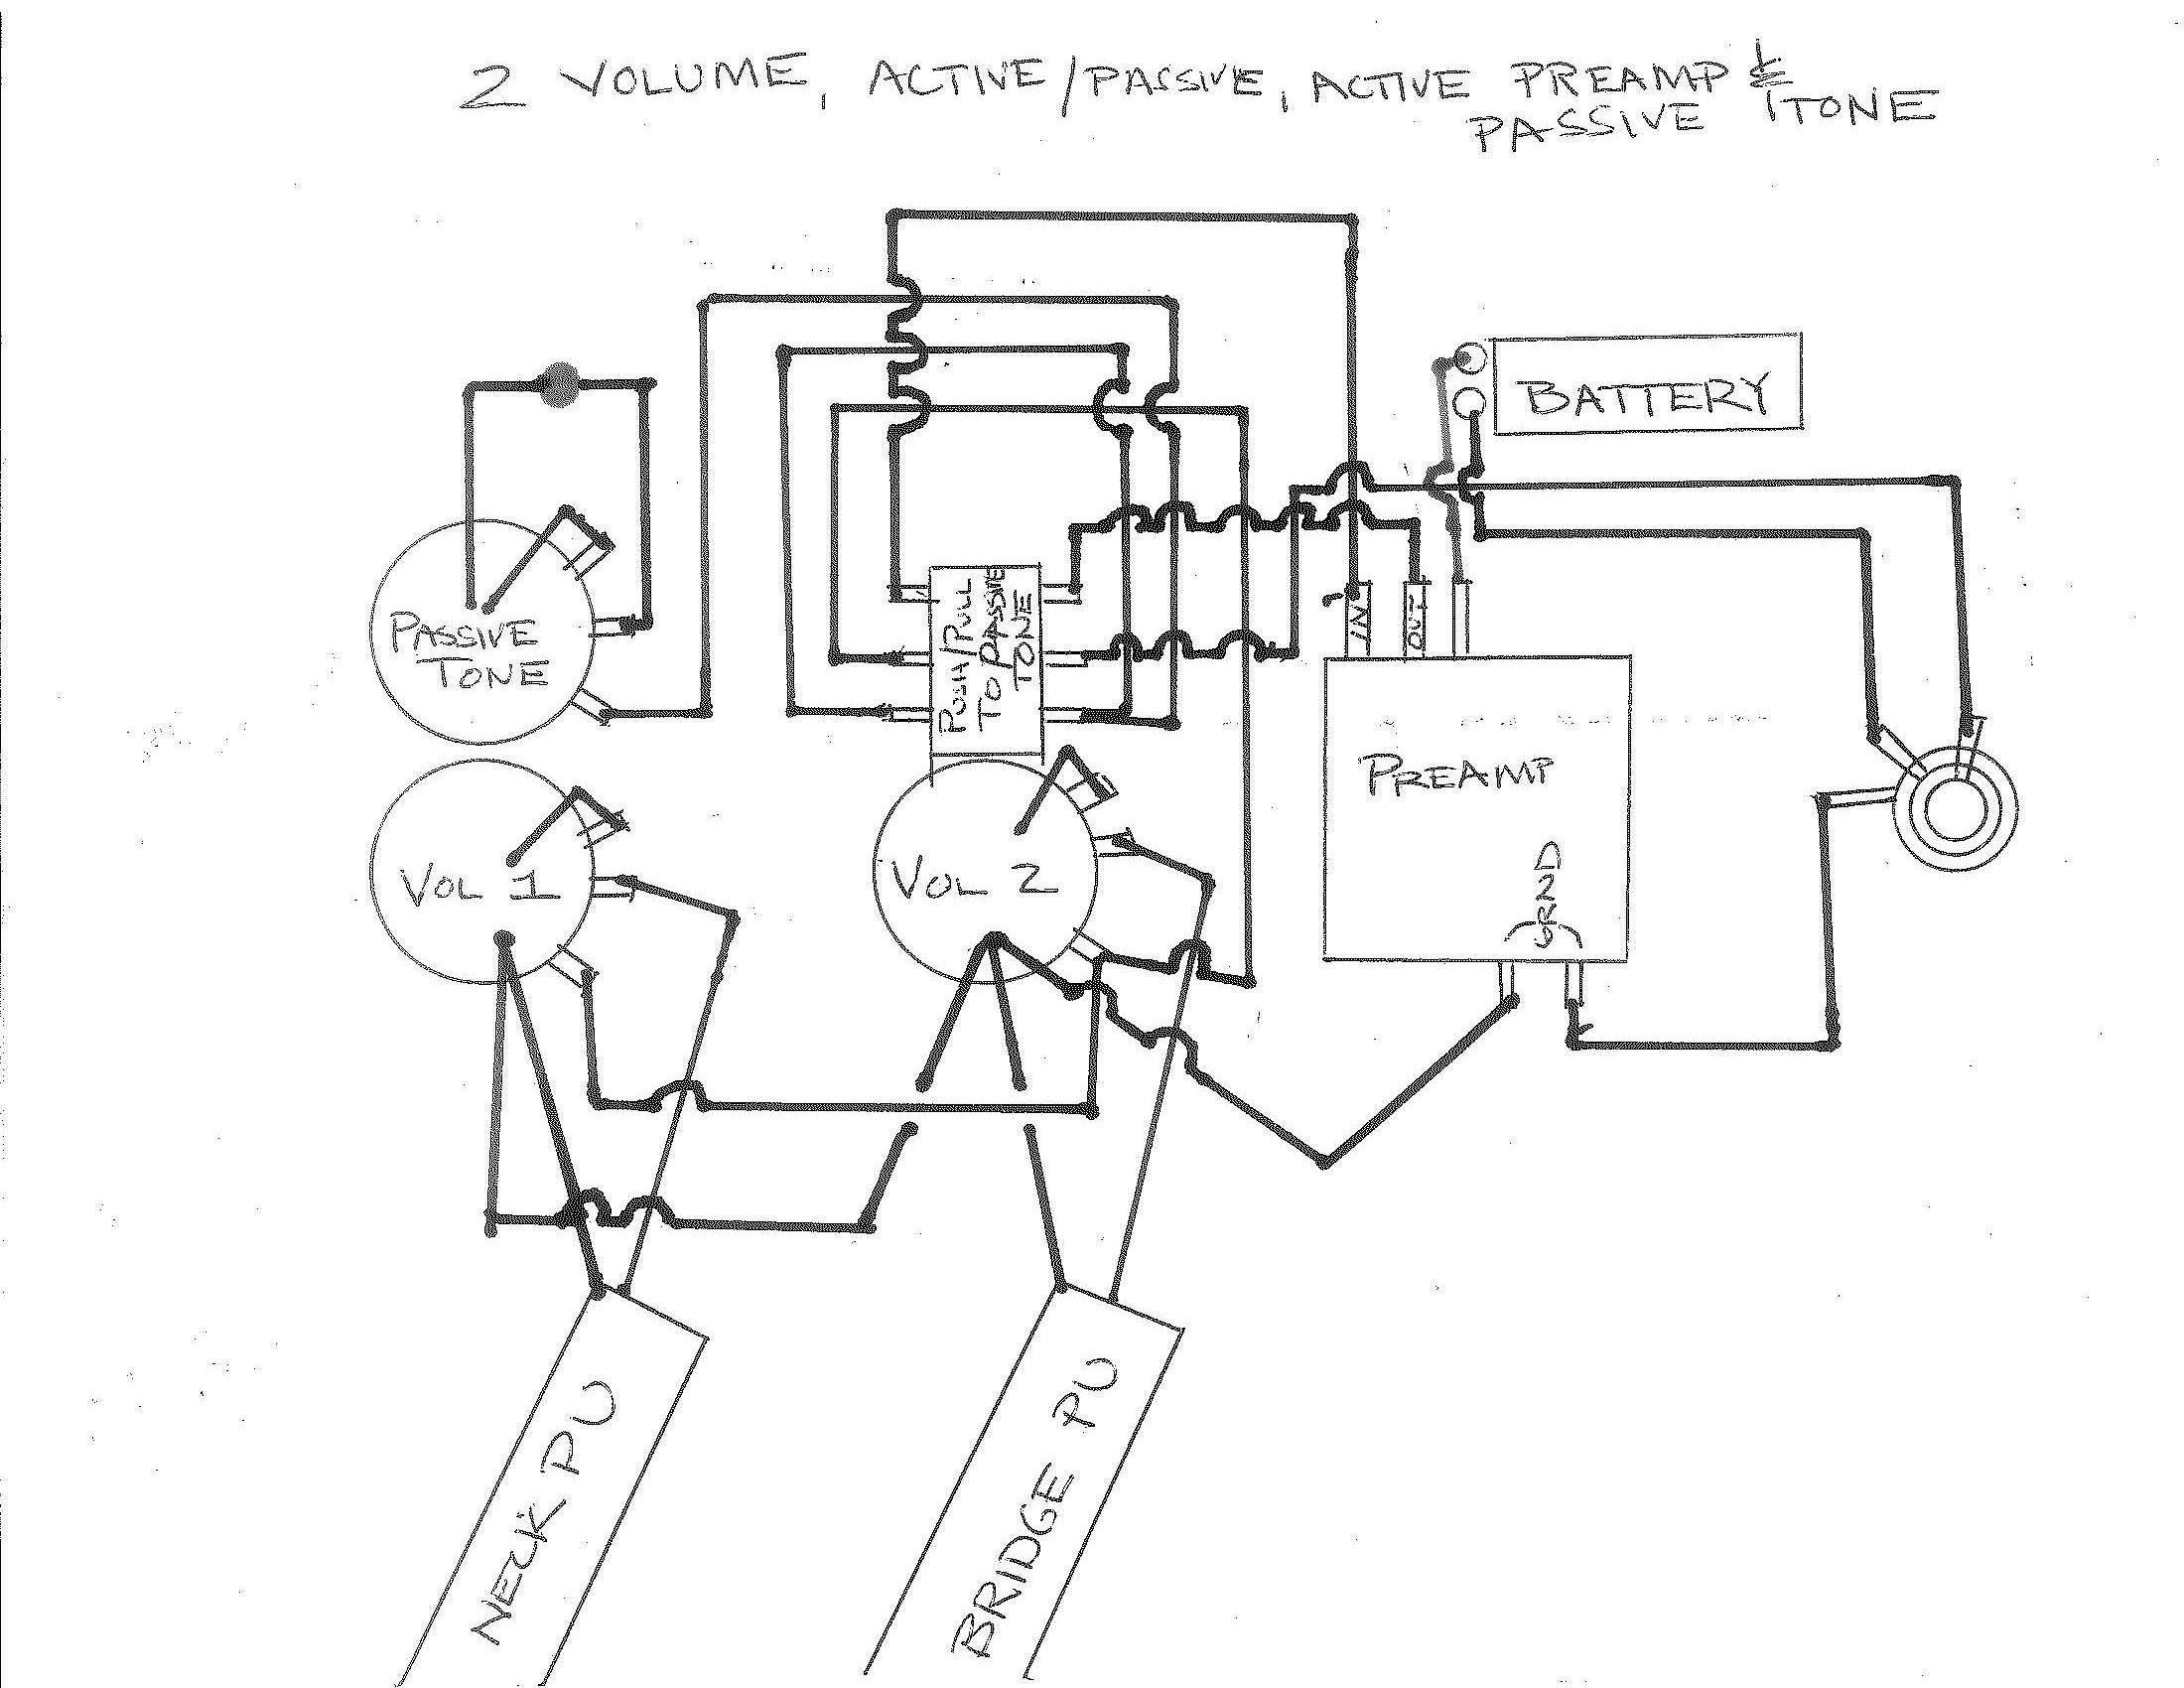 Wiring Gurusneed More Help Or Again Pre Amp Diagrams 2 Vol A P Tone Active Preamp